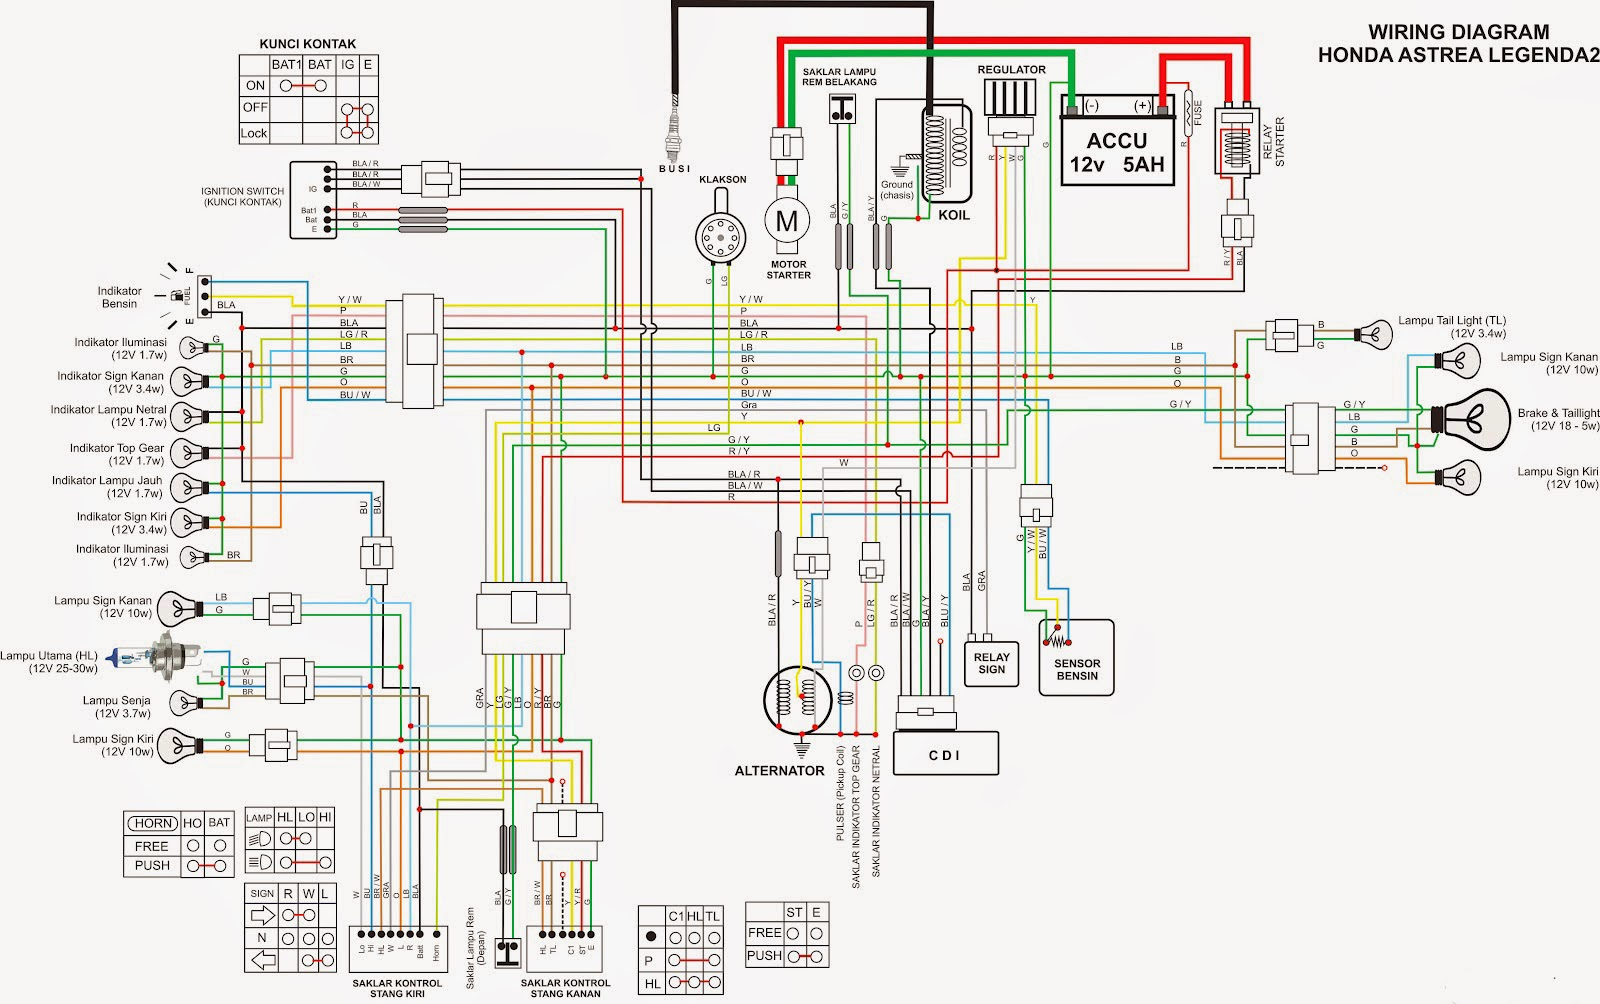 hight resolution of jupier z1 wiring diagram wiring diagram yer jupier z1 wiring diagram source wiring diagram jupiter z